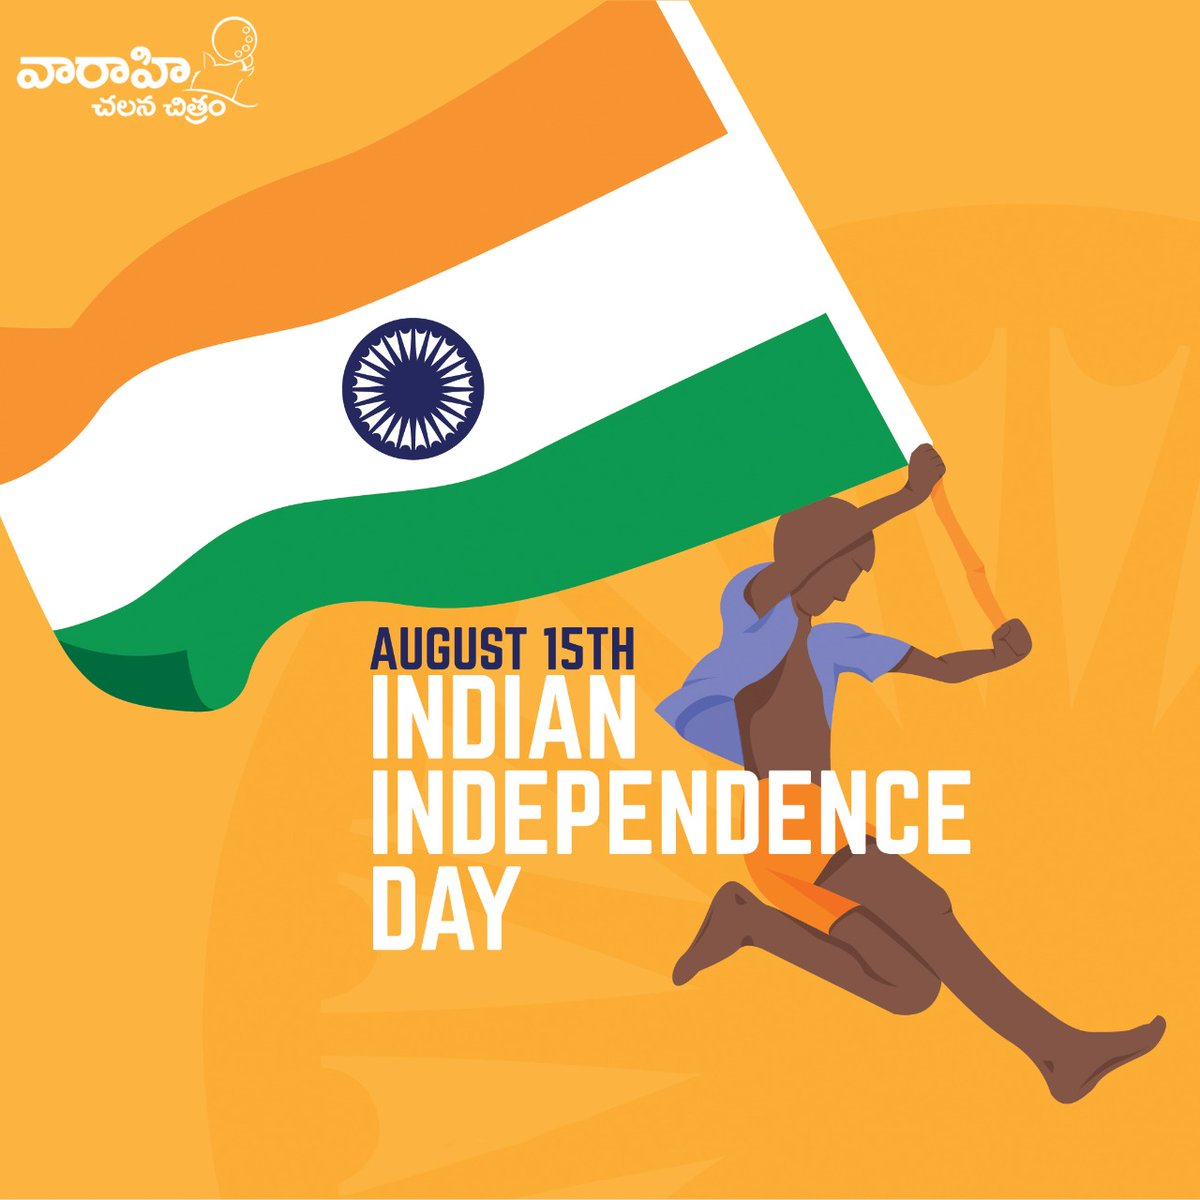 A big salute to all the soldiers who sacrificed their lives for our independence .  Happy #IndependenceDayIndia 🇮🇳 #JaiHind https://t.co/JQHLx5VJmp